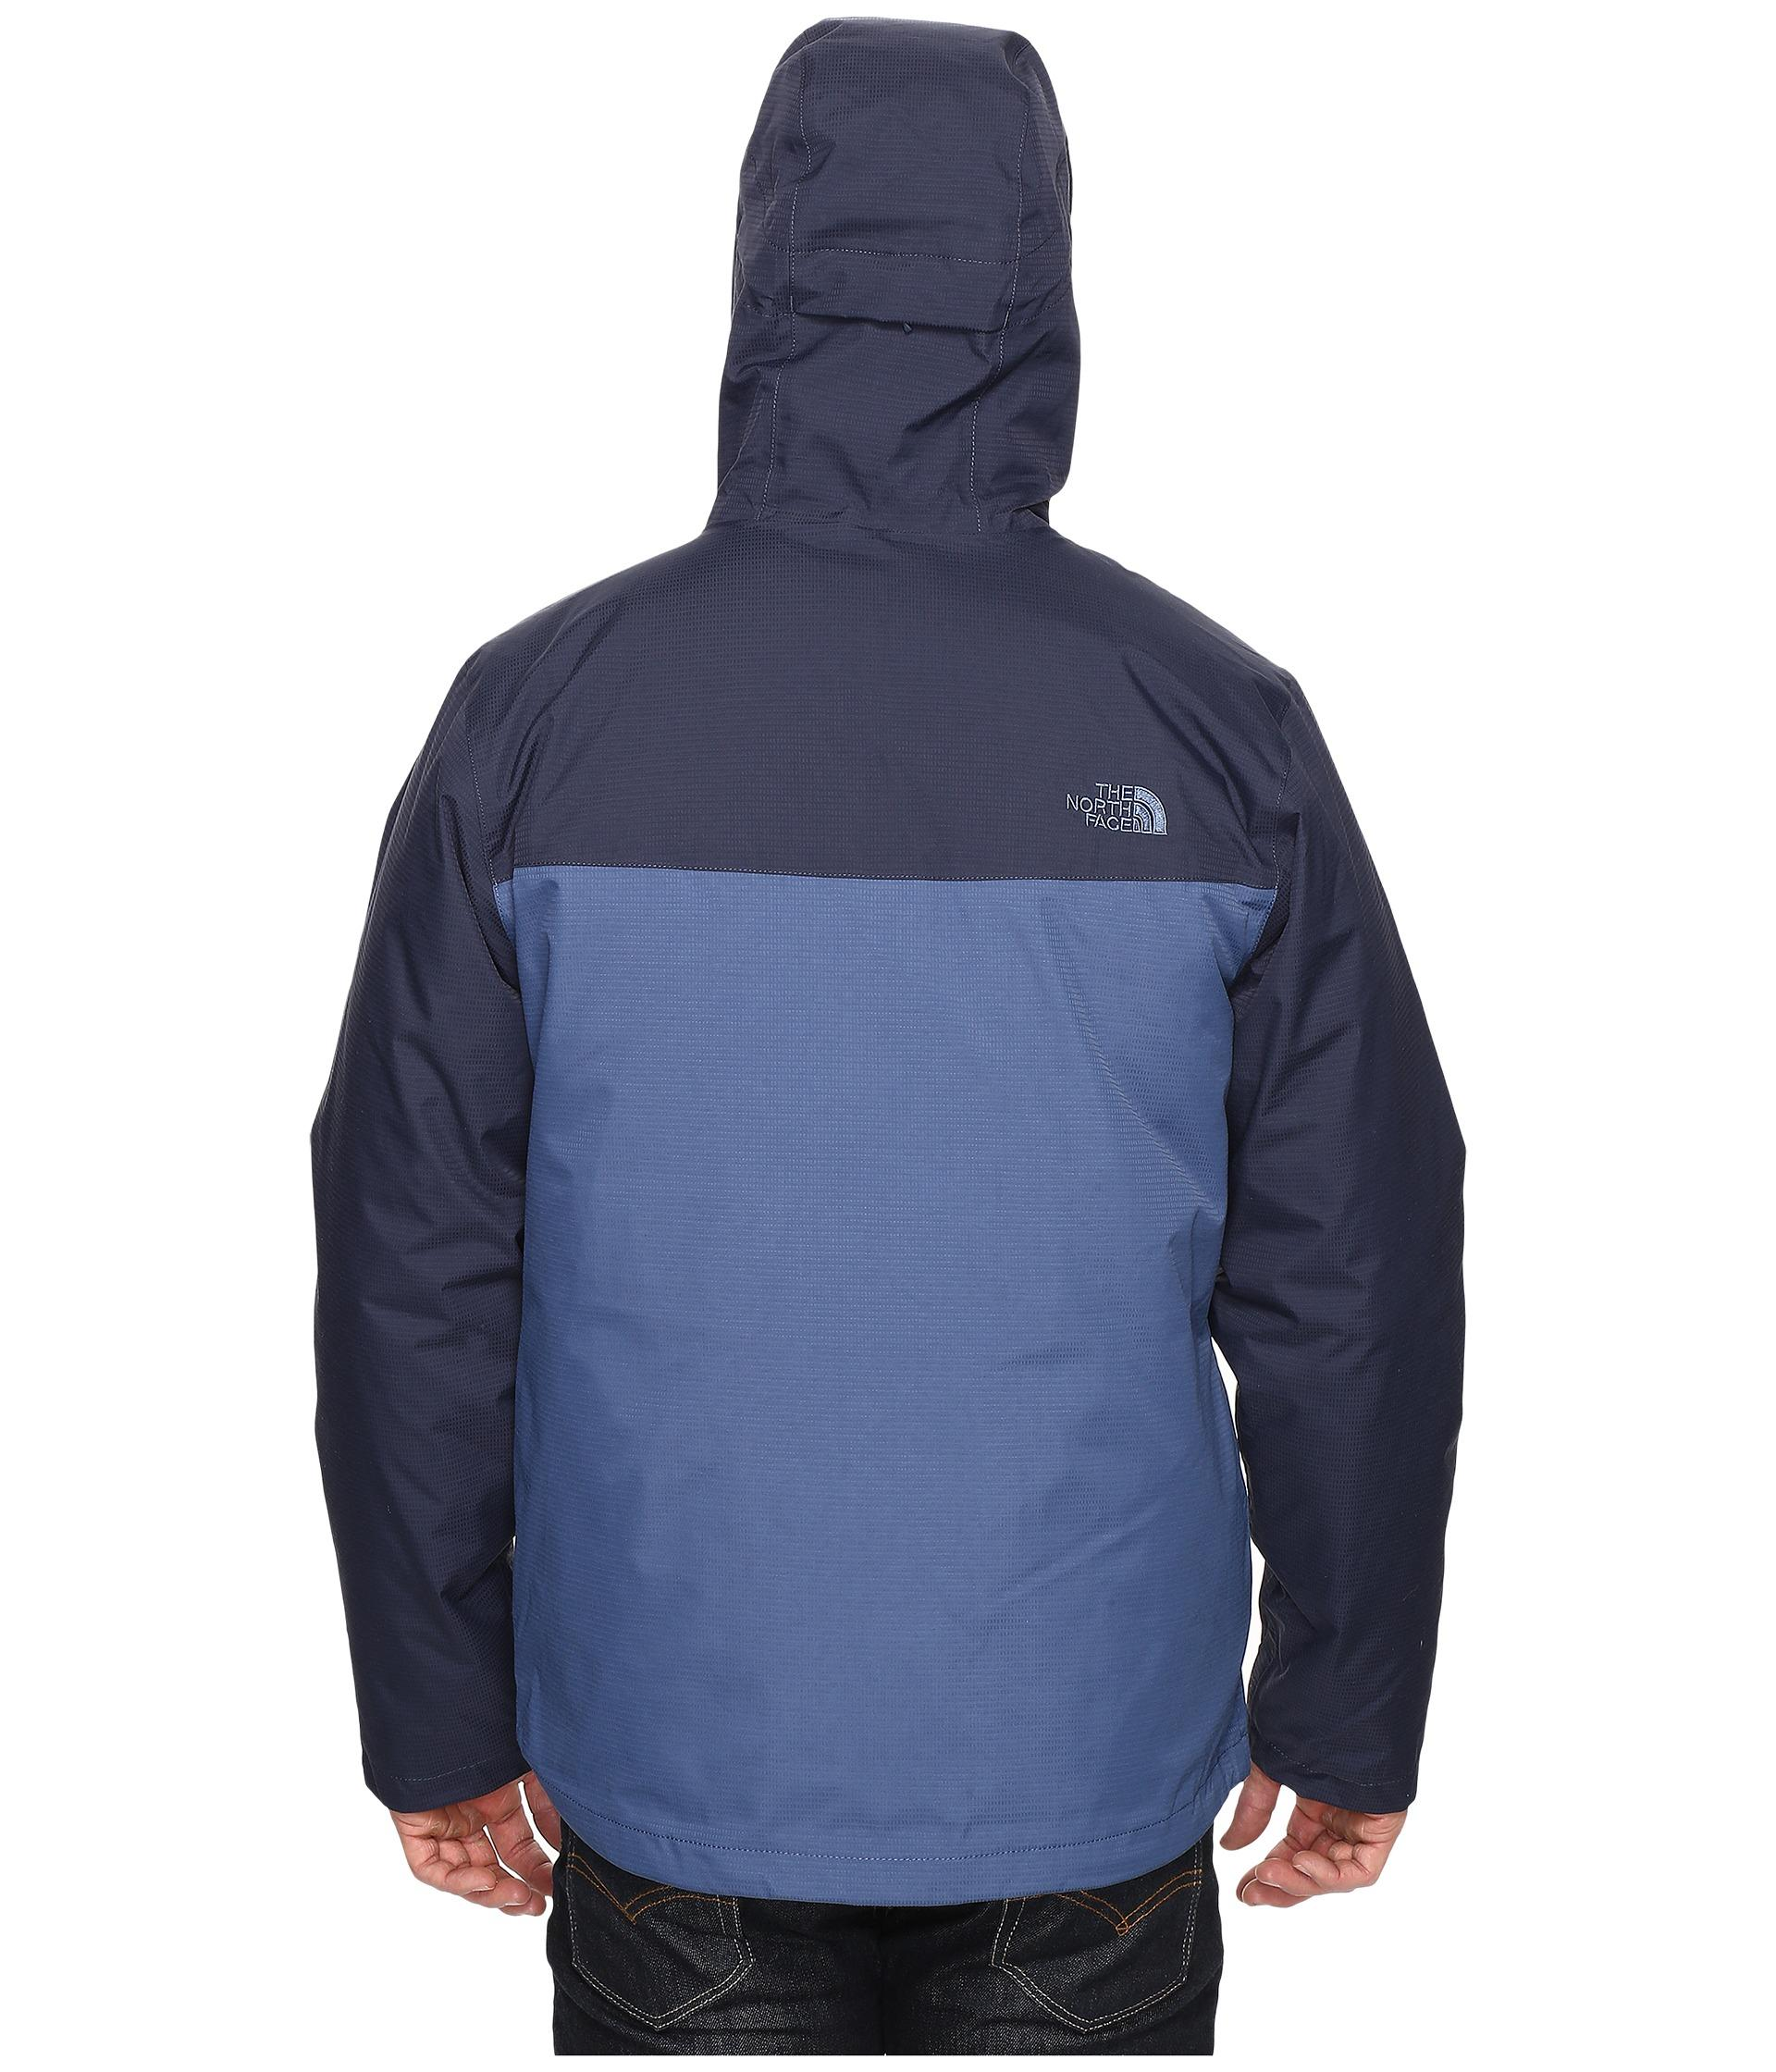 7e0f9d59c The North Face Blue Beswick Triclimate Jacket for men